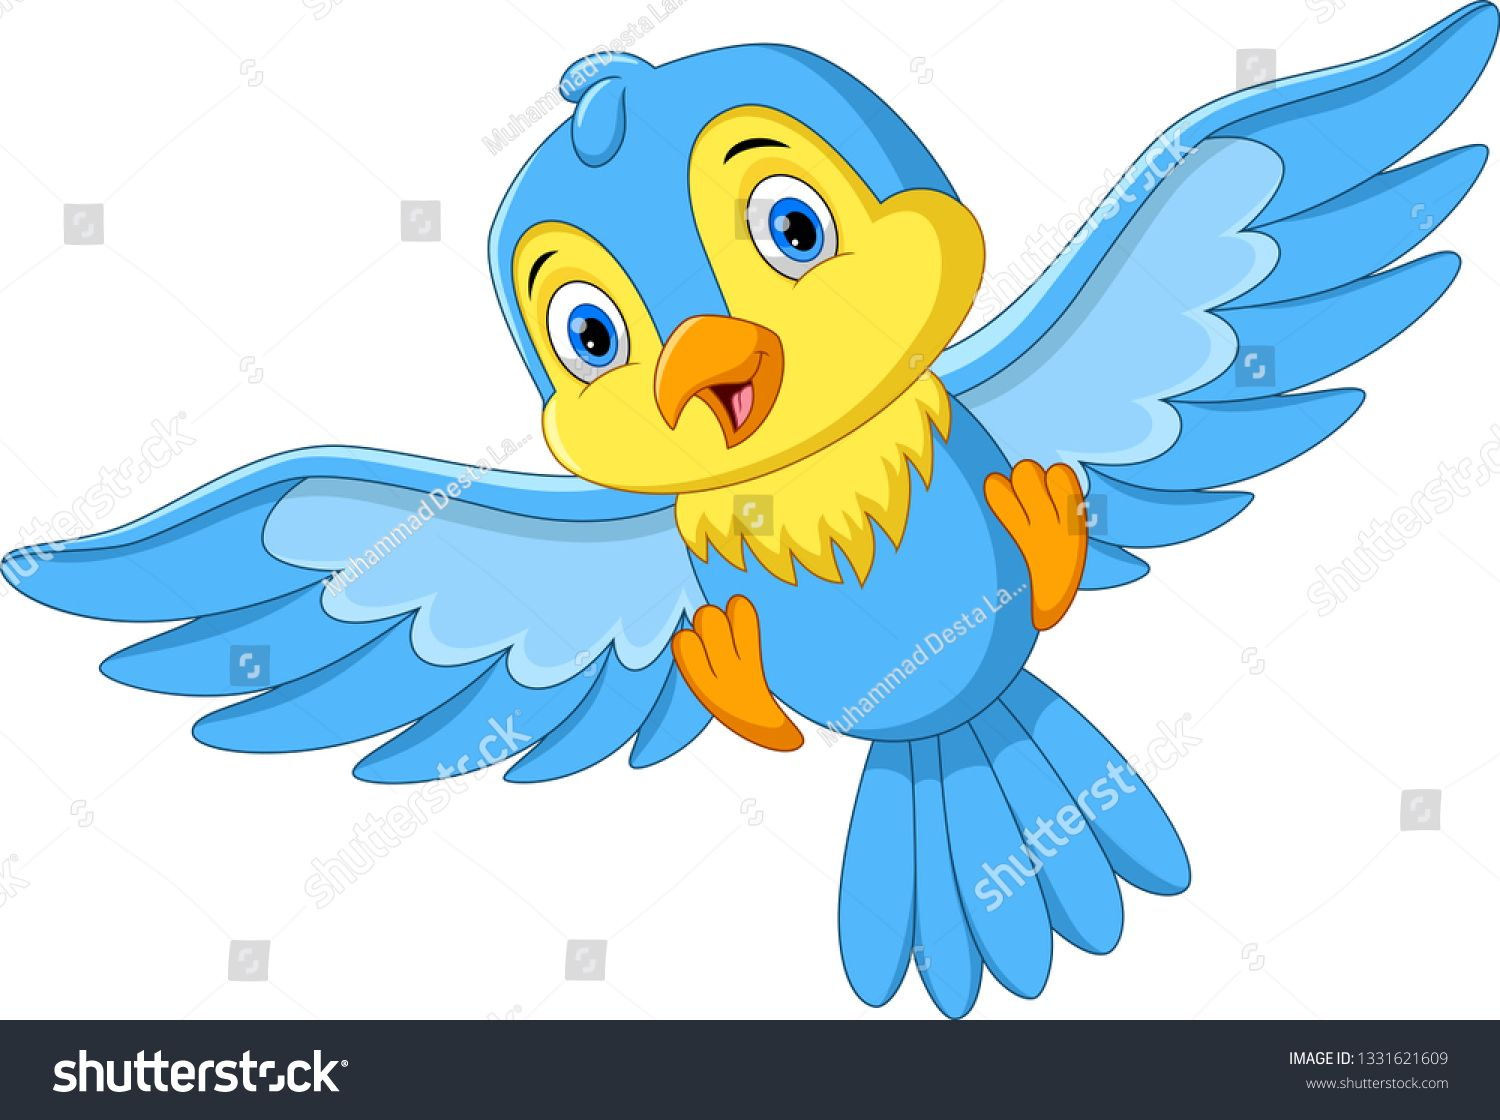 45+ Animated Flying Birds Clipart